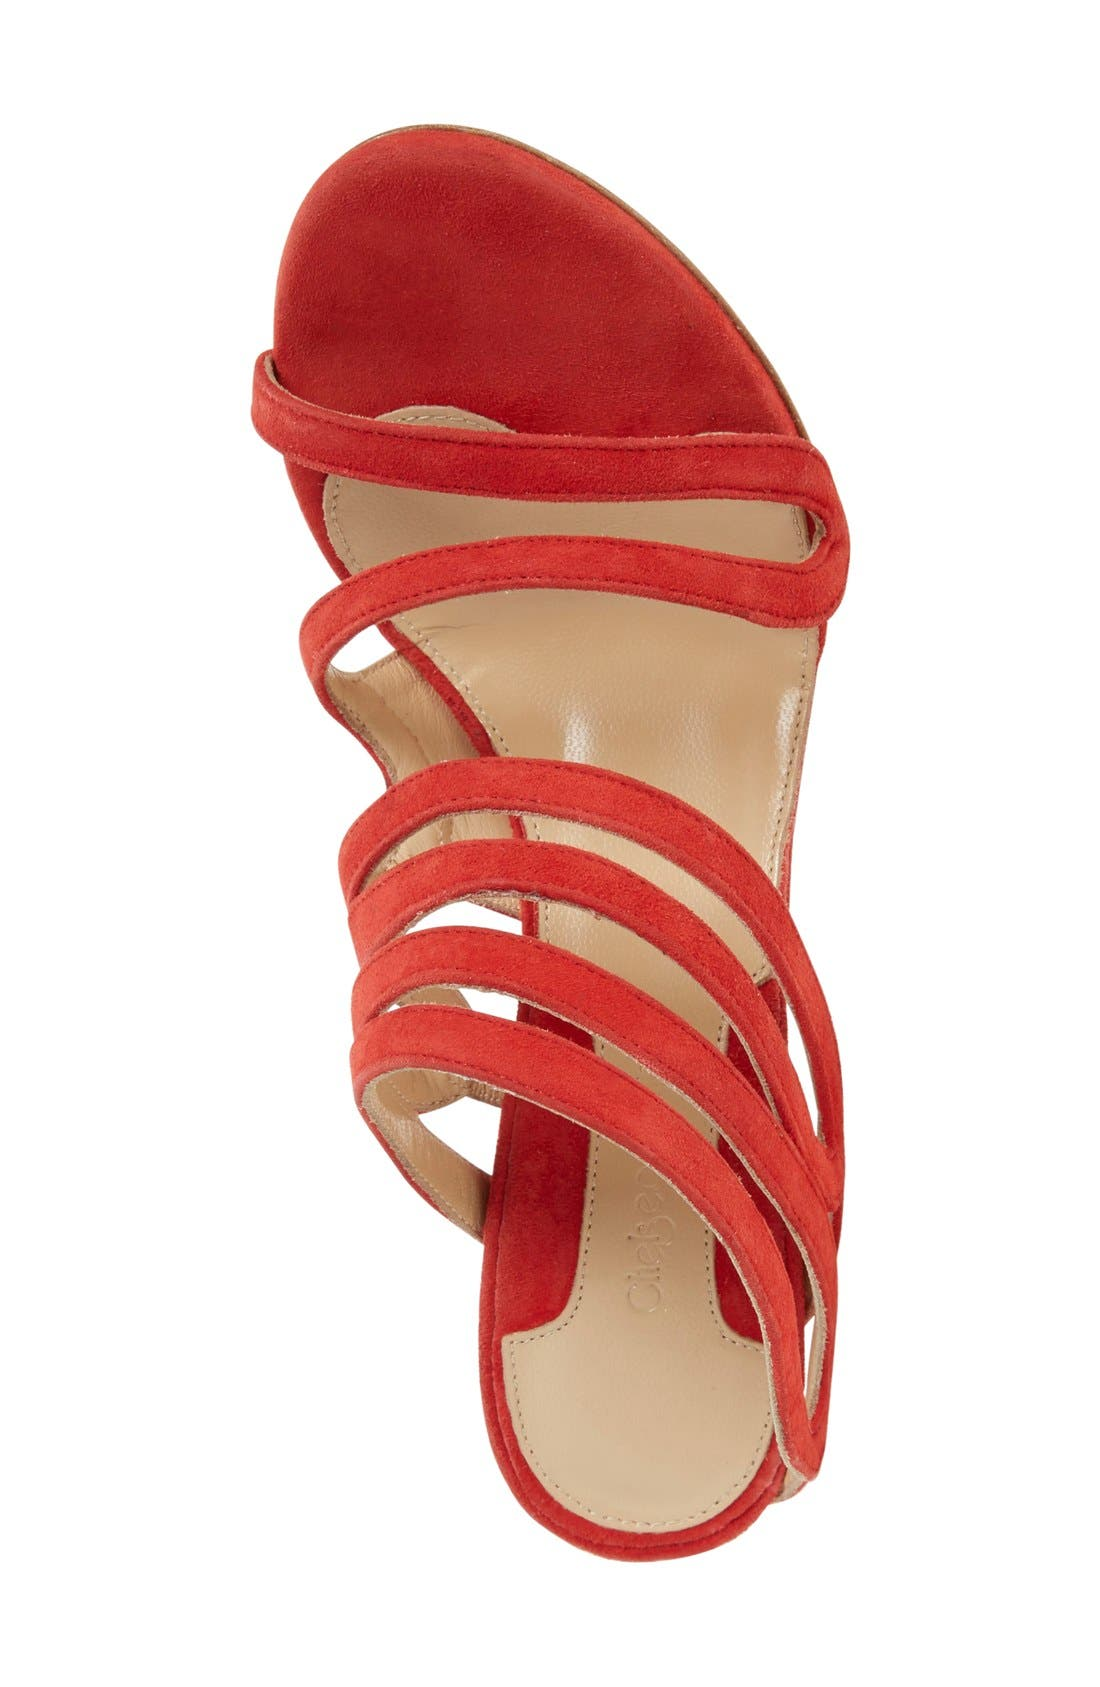 Alternate Image 3  - Chelsea Paris 'Melek' Sandal (Women)